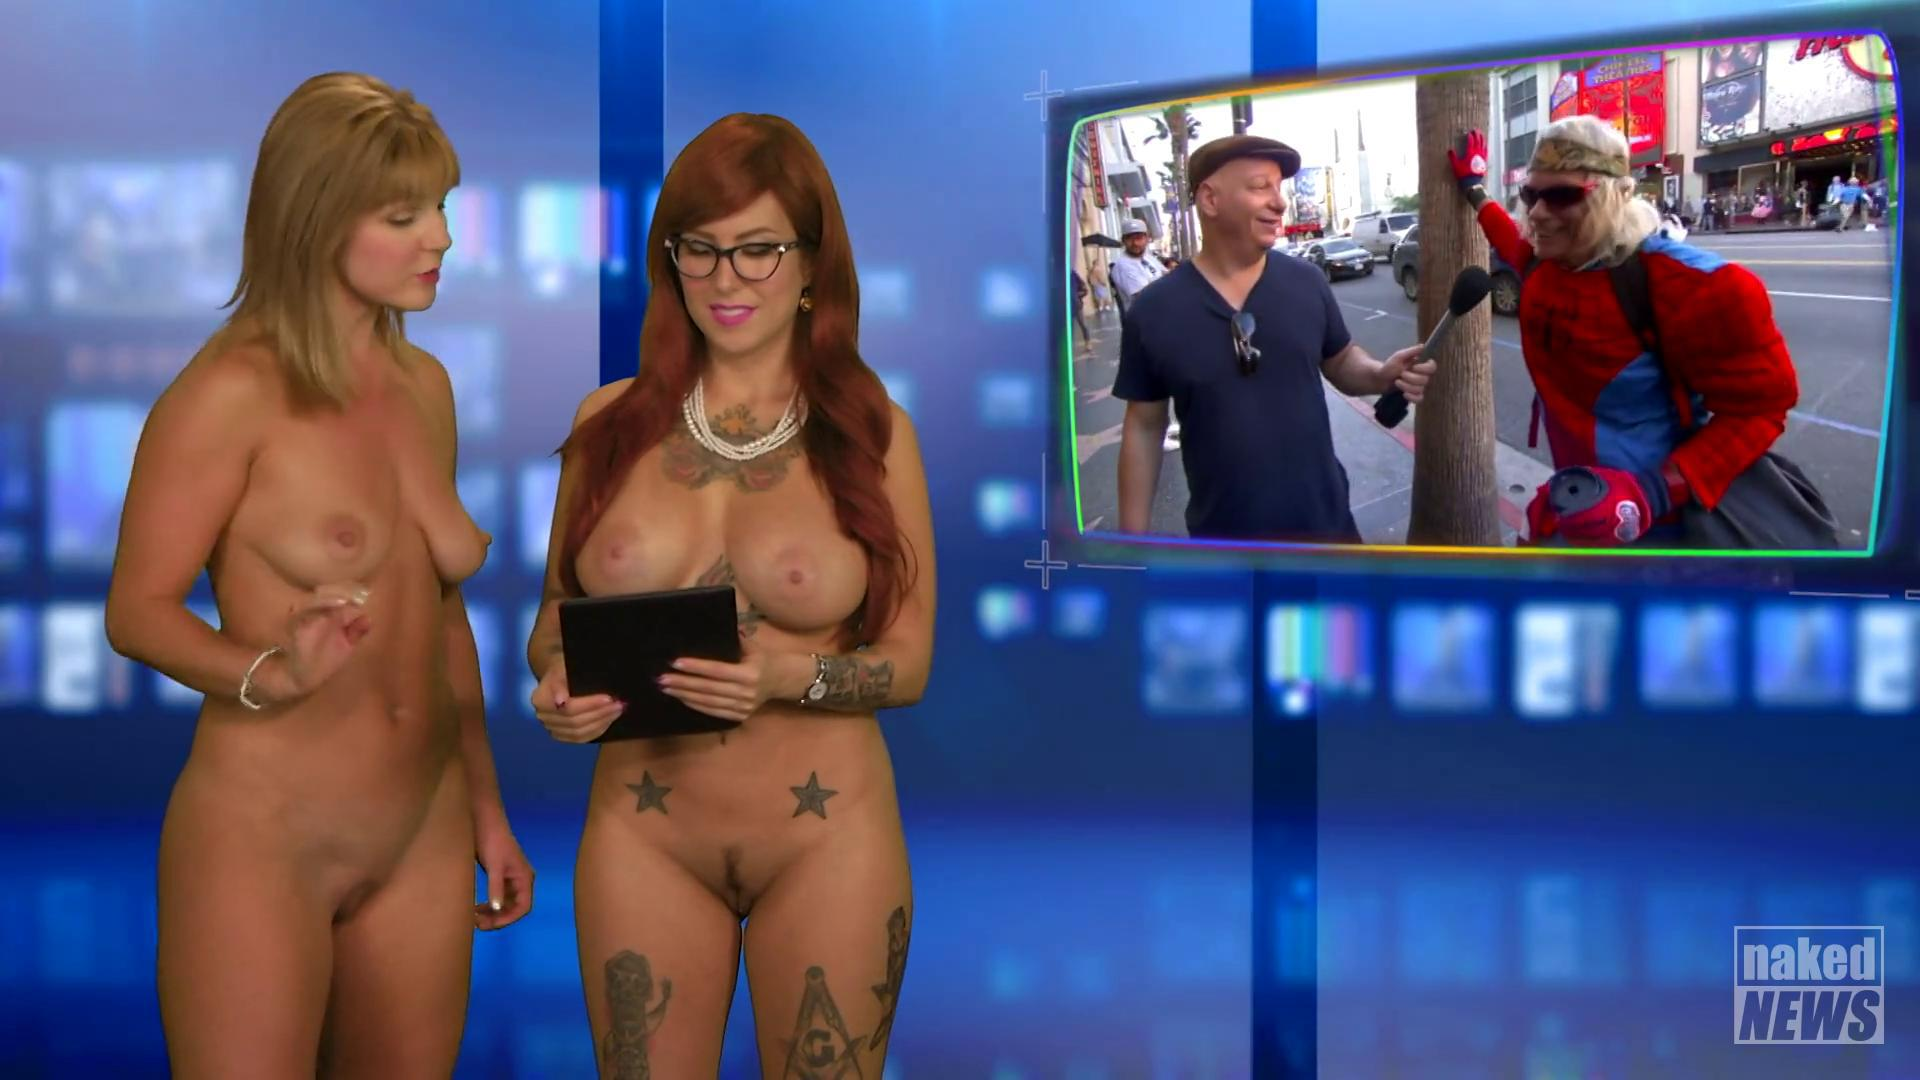 Weather Girl Does Forecast Nude